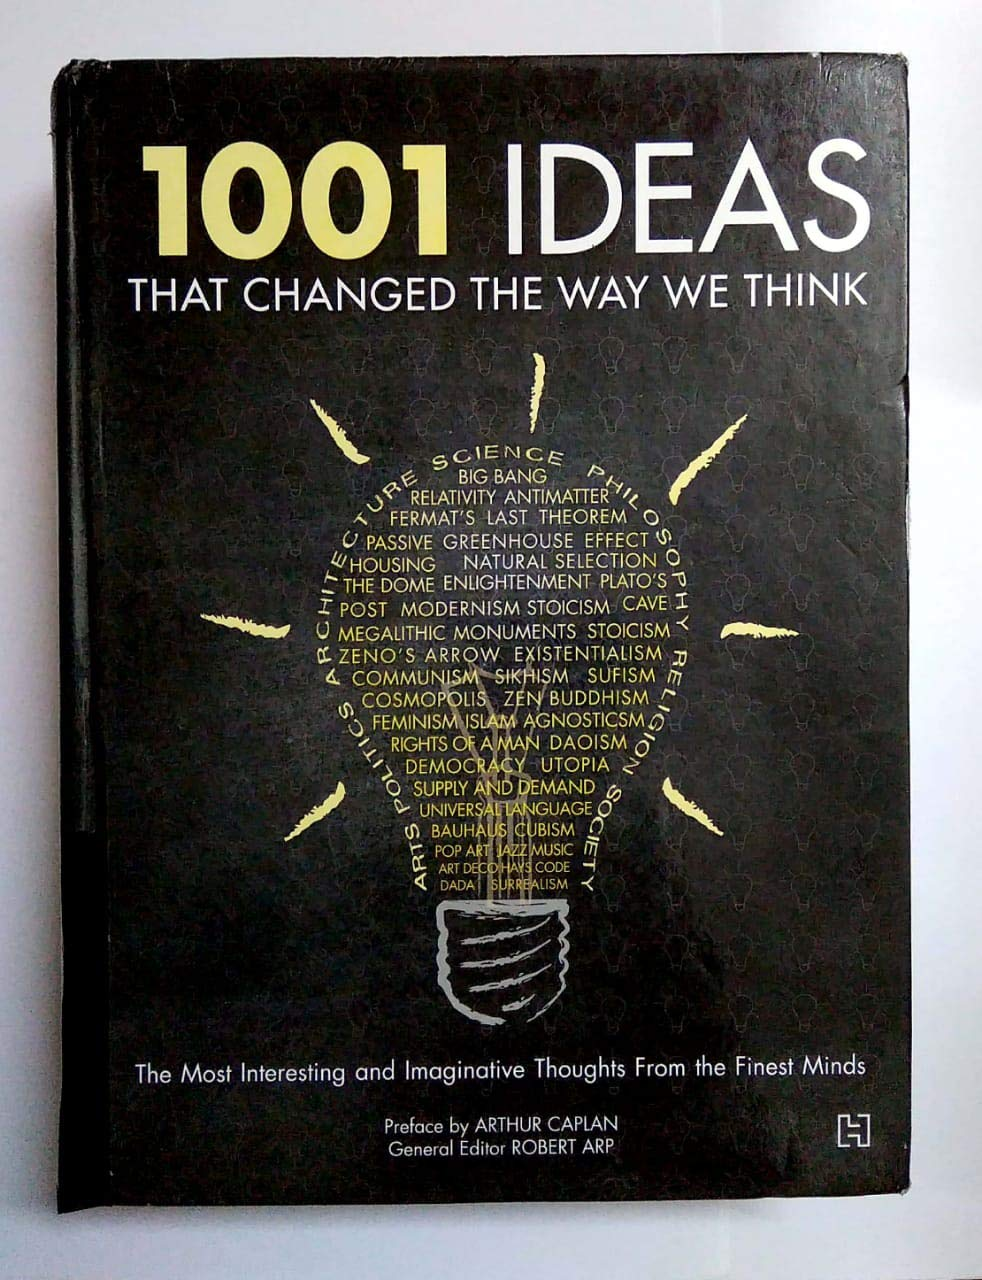 Amazon.in: Buy 1001 IDEAS THAT CHANGED THE WAY WE THINK (FORTH EDITION,  2016) Book Online at Low Prices in India | 1001 IDEAS THAT CHANGED THE WAY  WE THINK ...